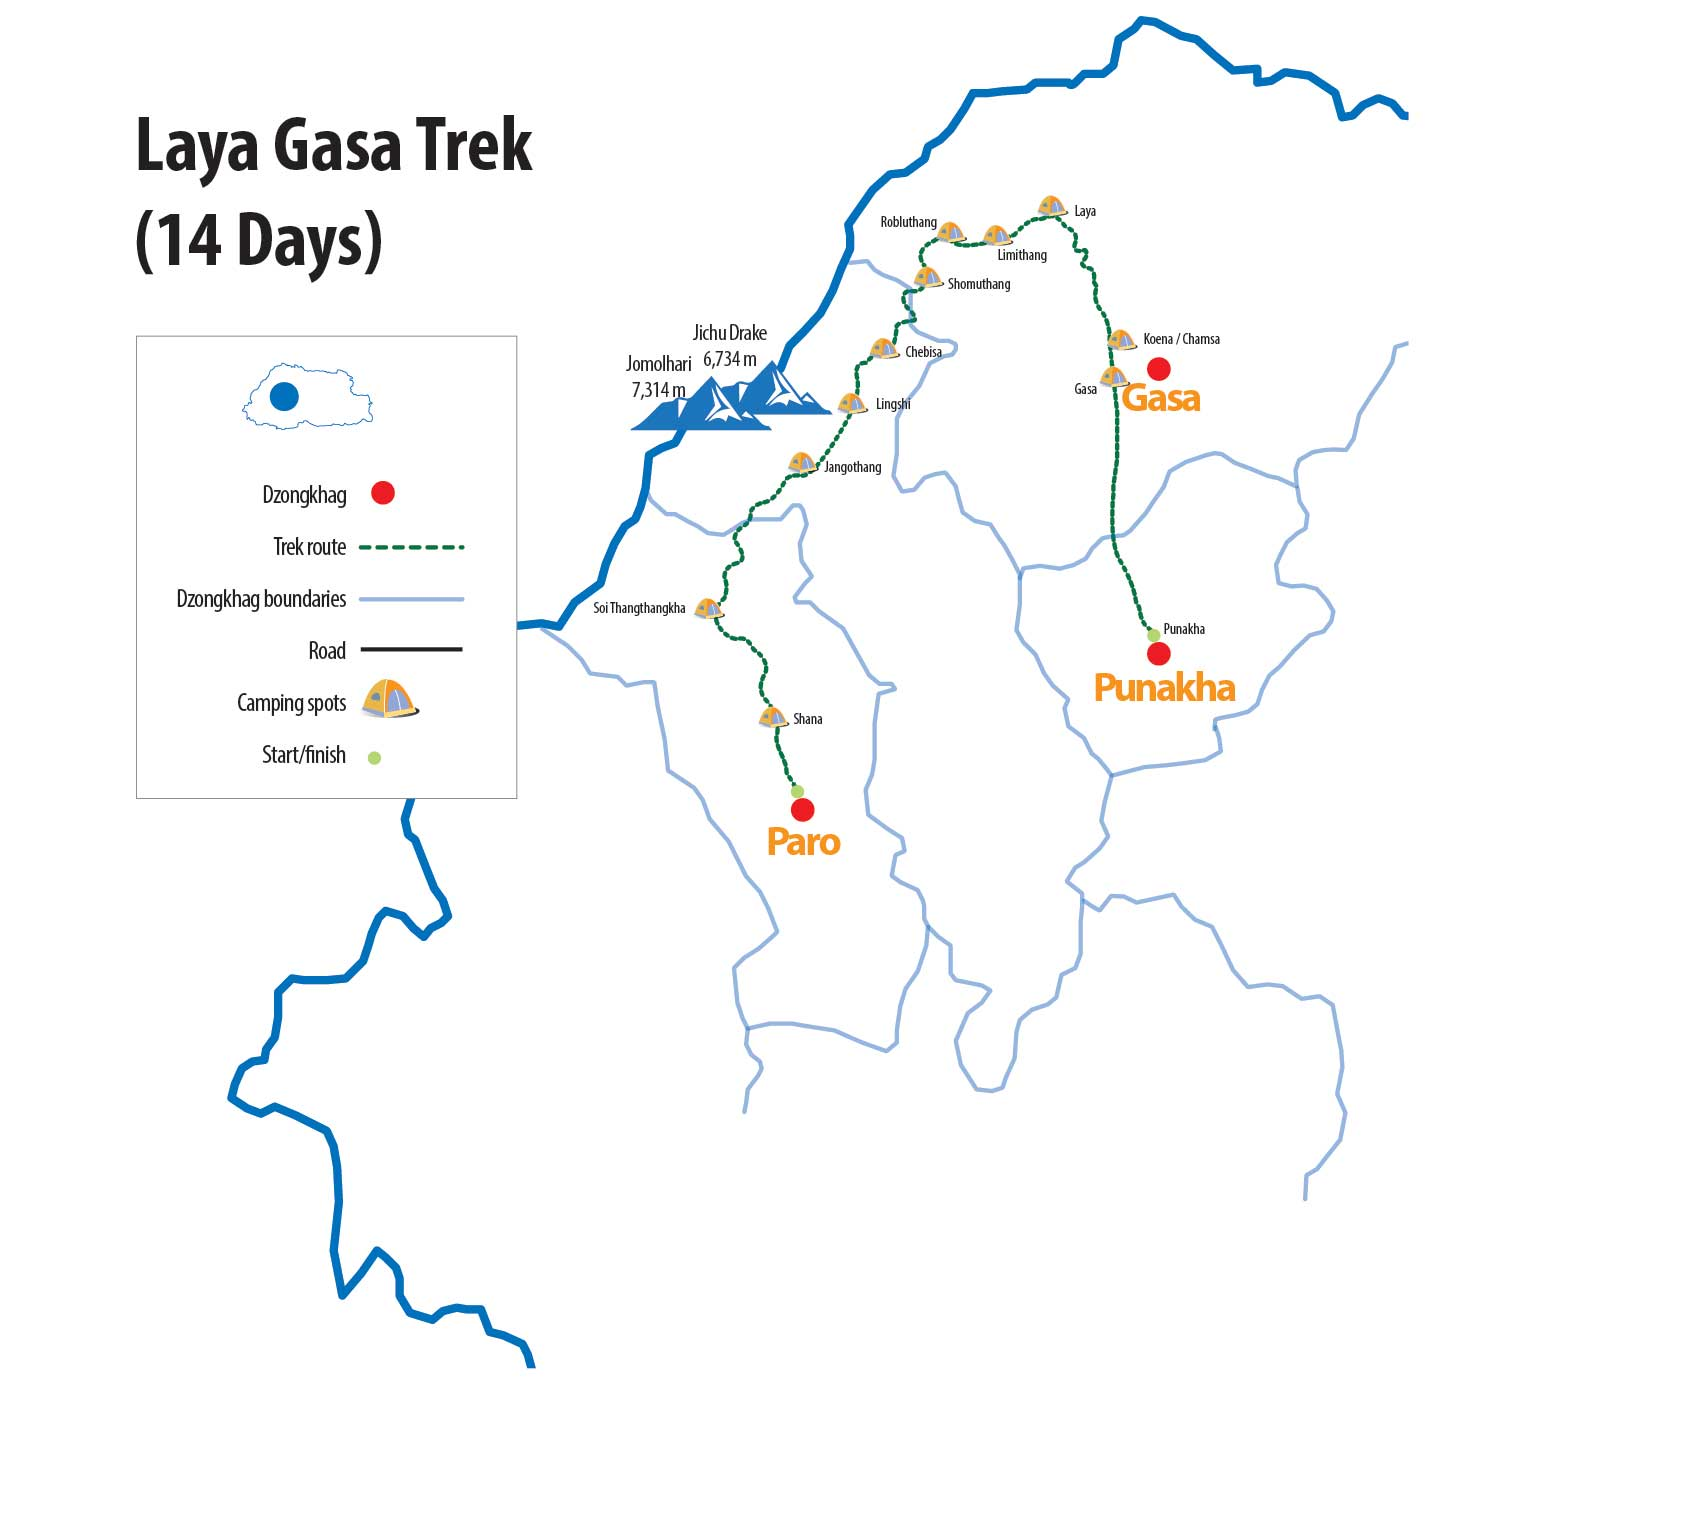 Laya Gasa Trek Route Map